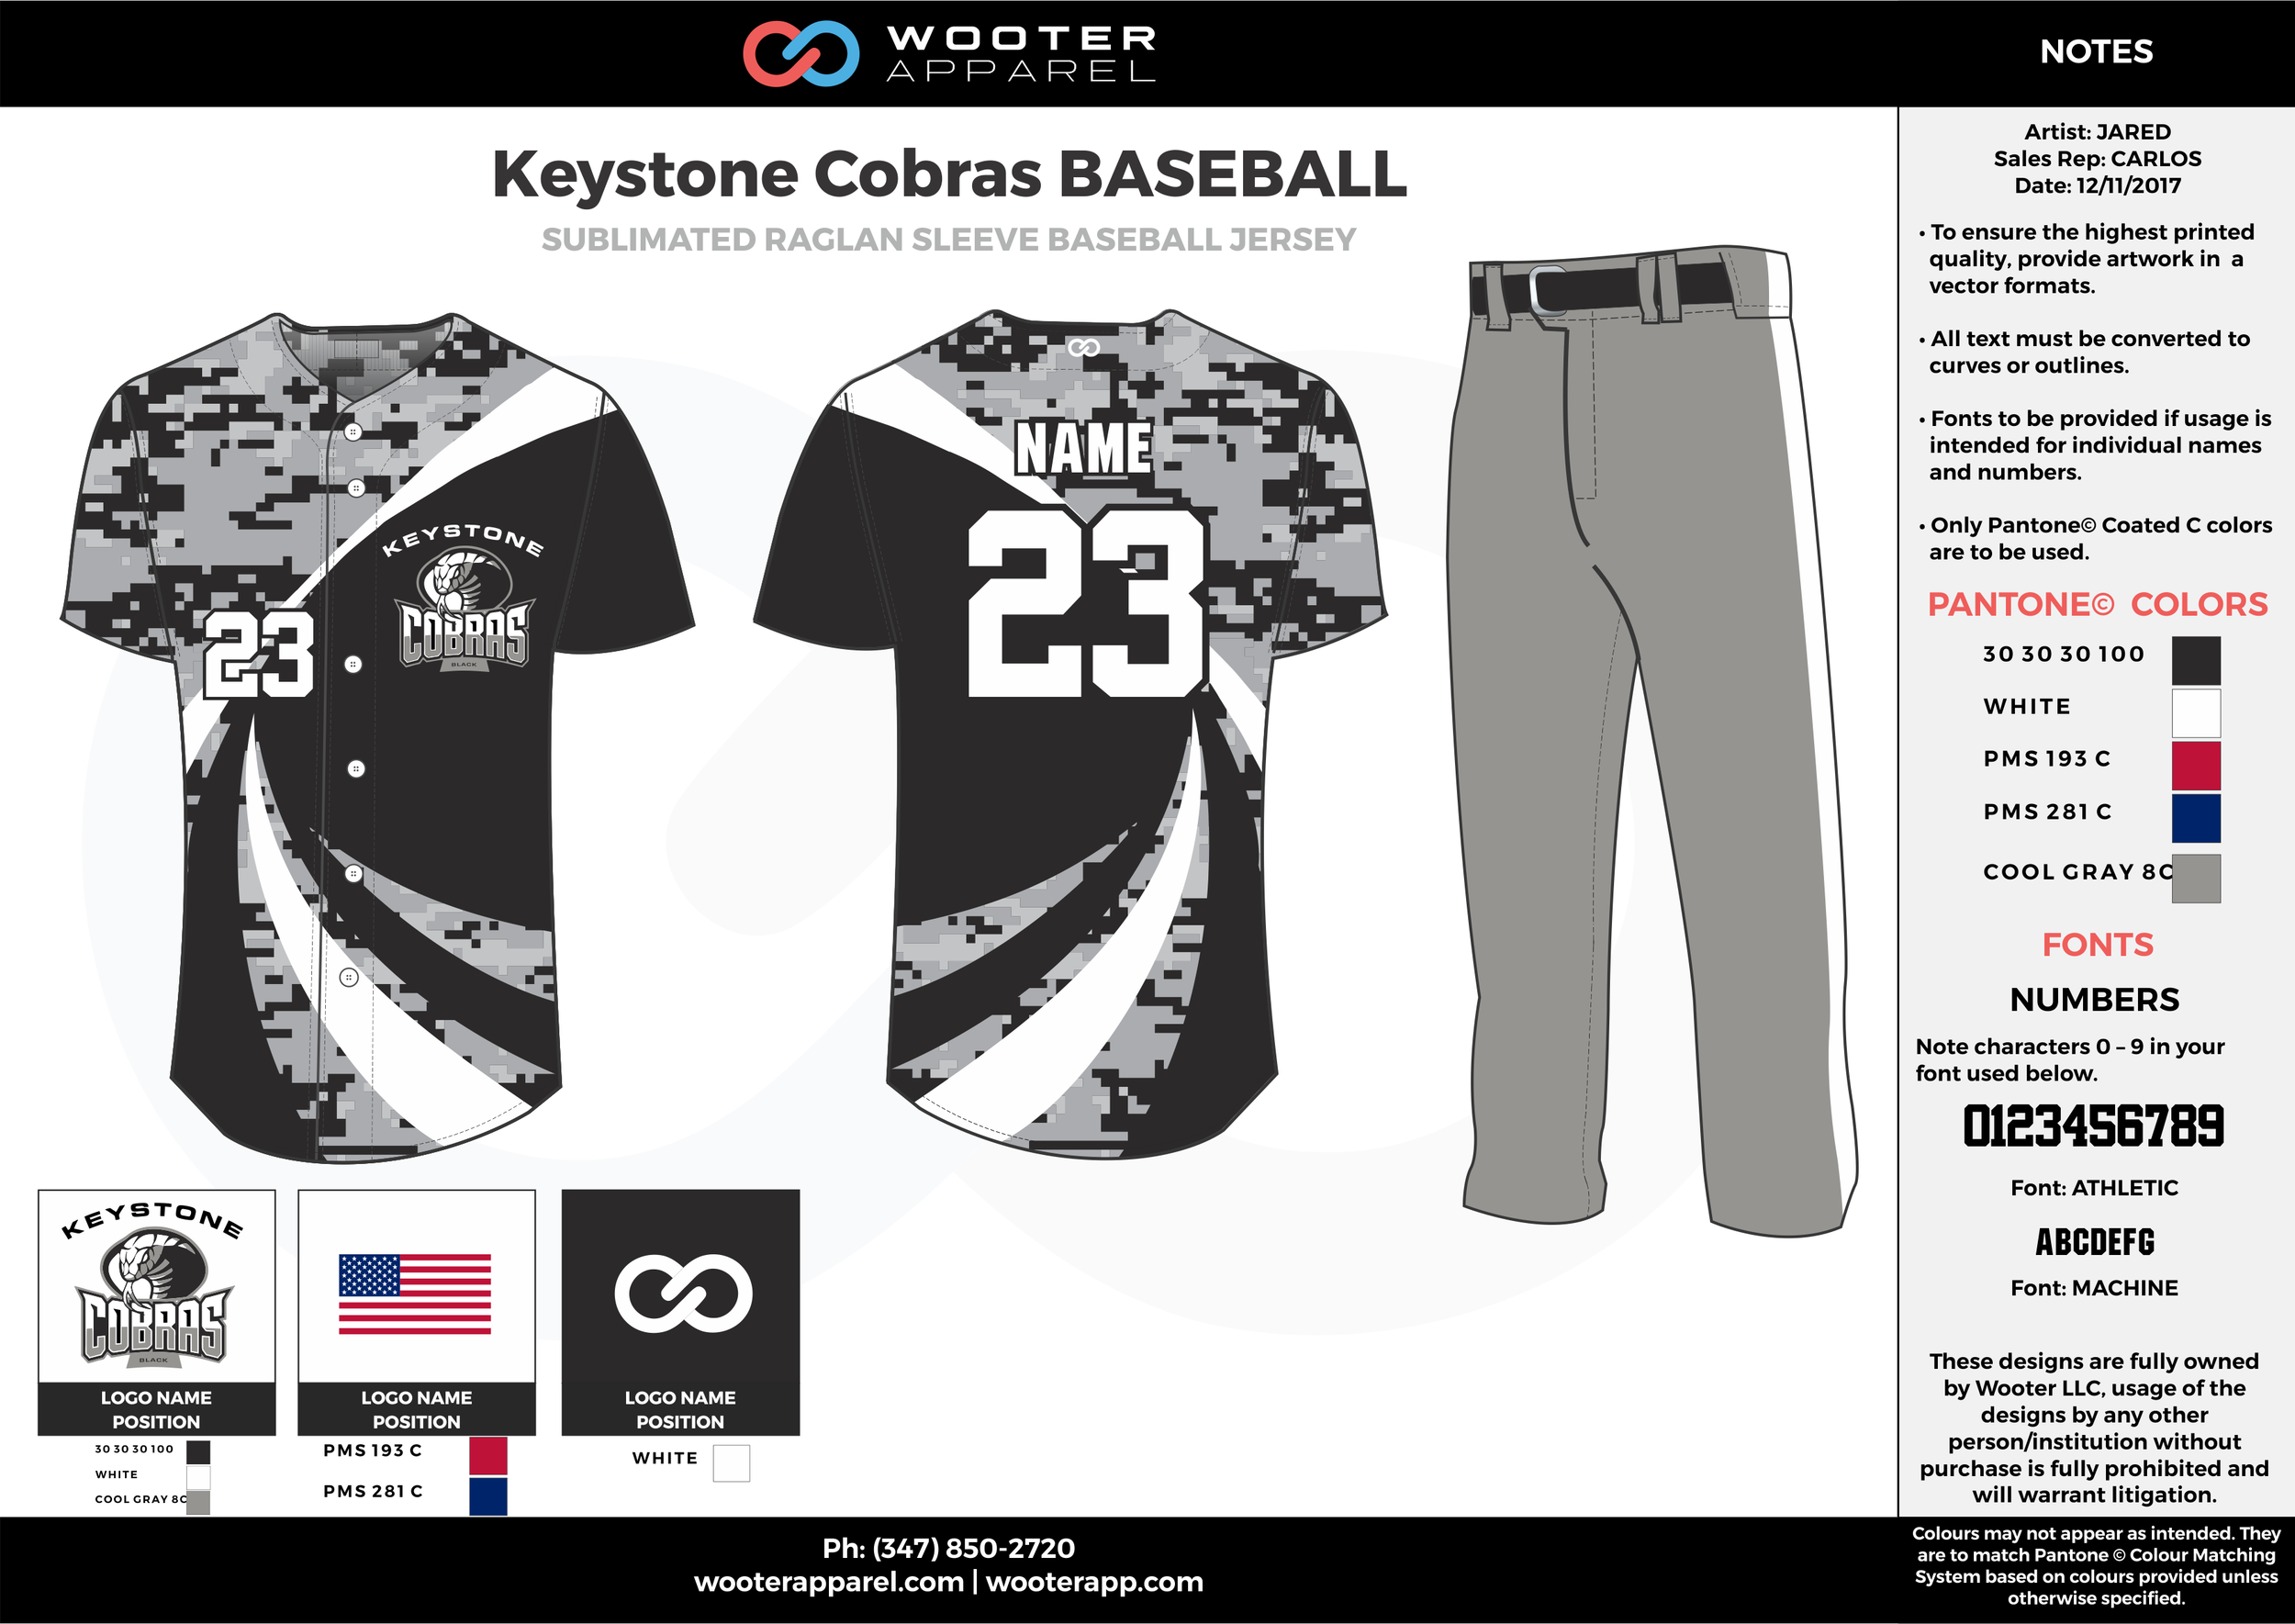 KEYSTONE COBRAS BASEBALL black gray white blue baseball uniforms jerseys pants